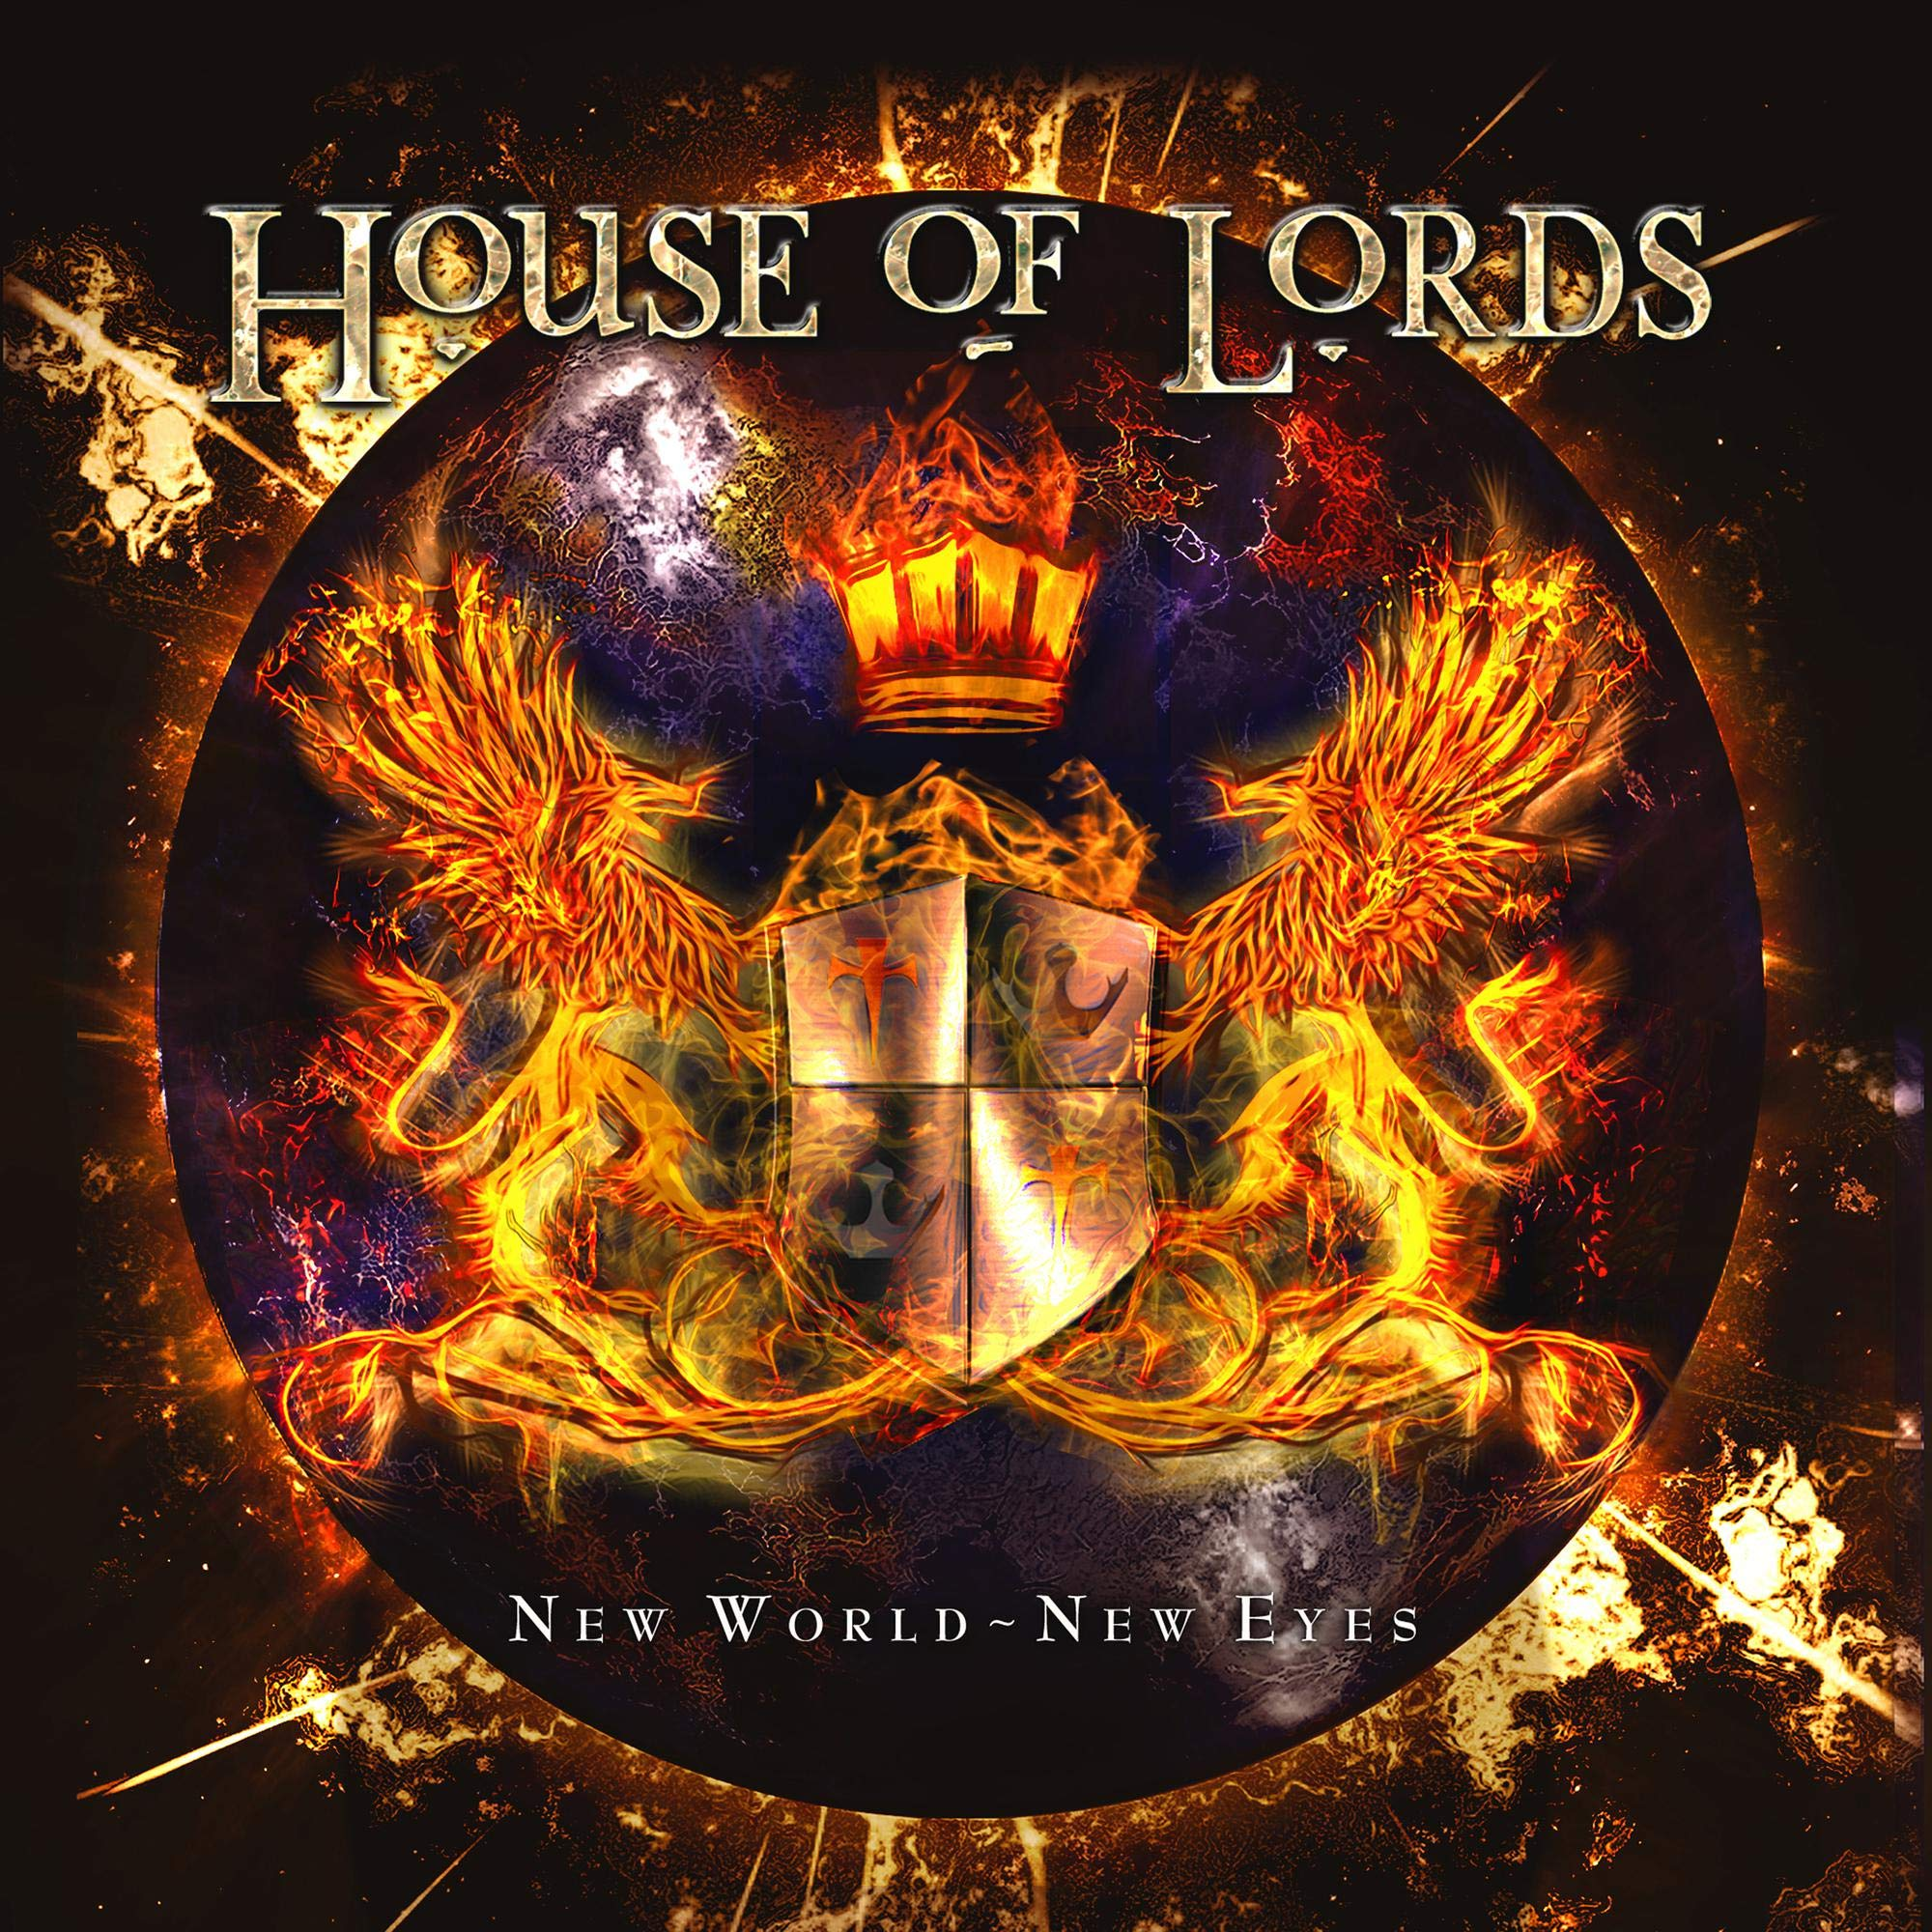 House Of Lords-New World-New Eyes-(FR CD 1031)-CD-FLAC-2020-WRE